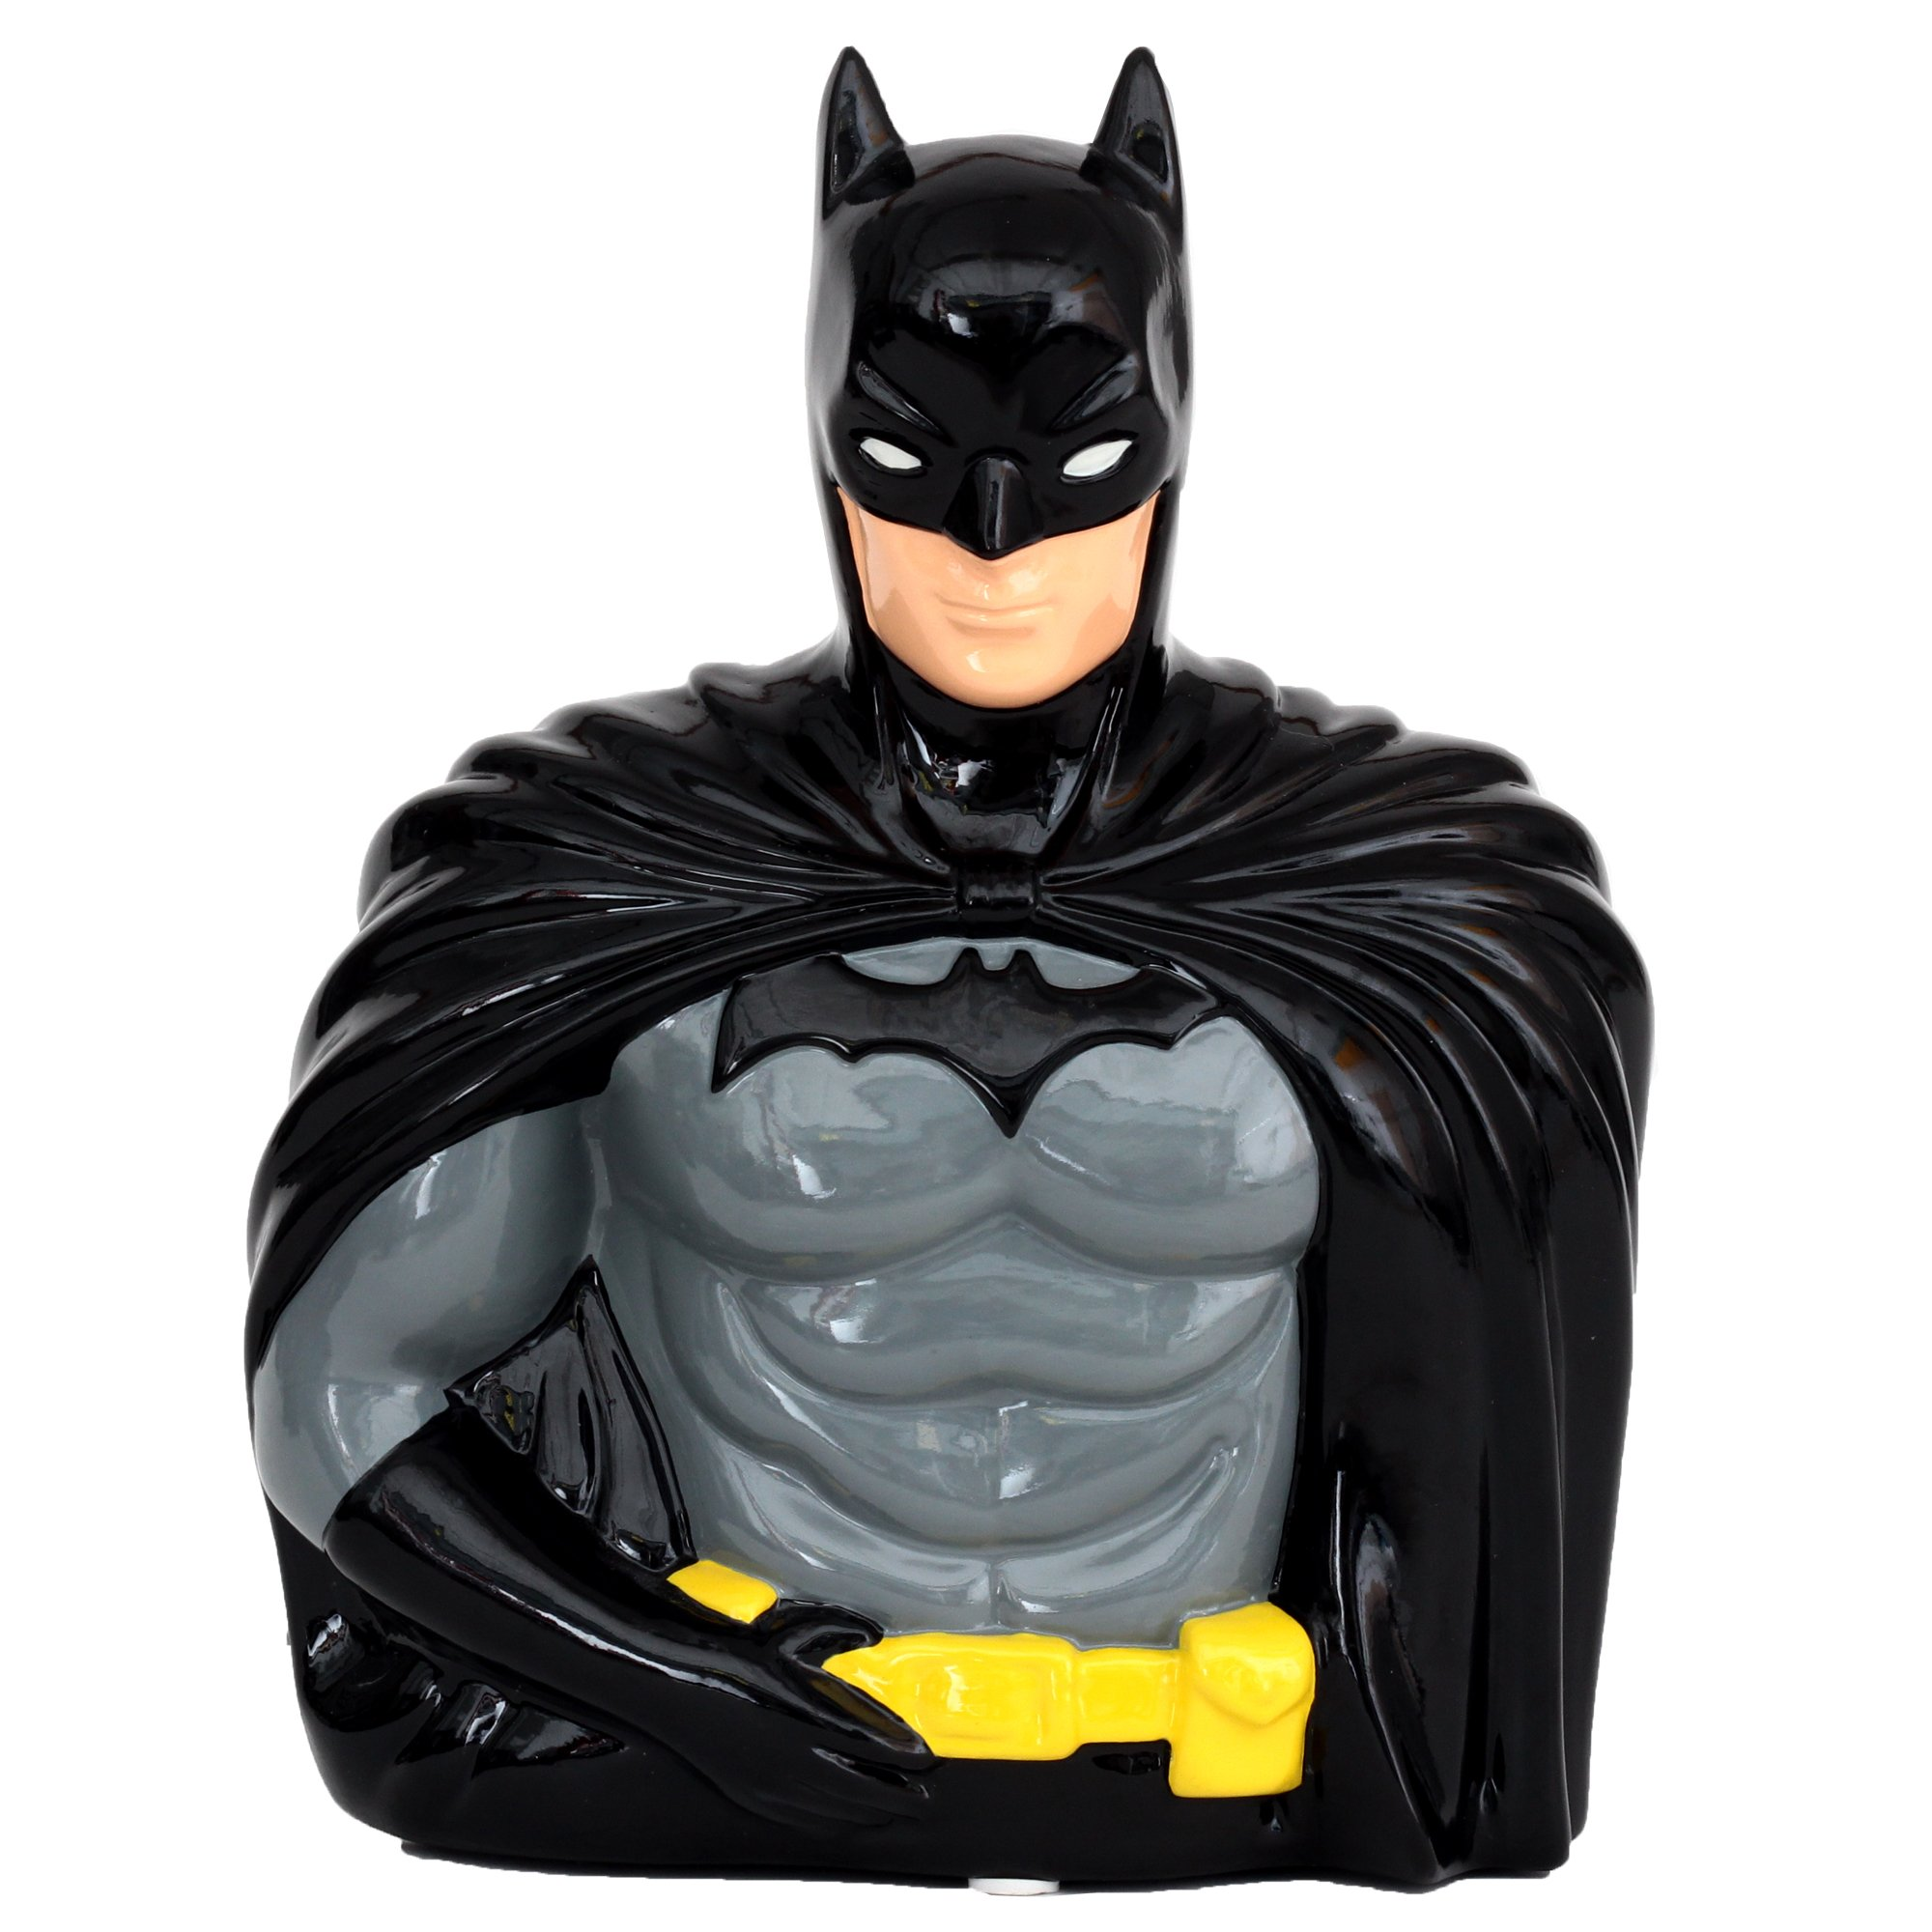 Official Brand New Batman Coin Bank in a Colored Box- One Size